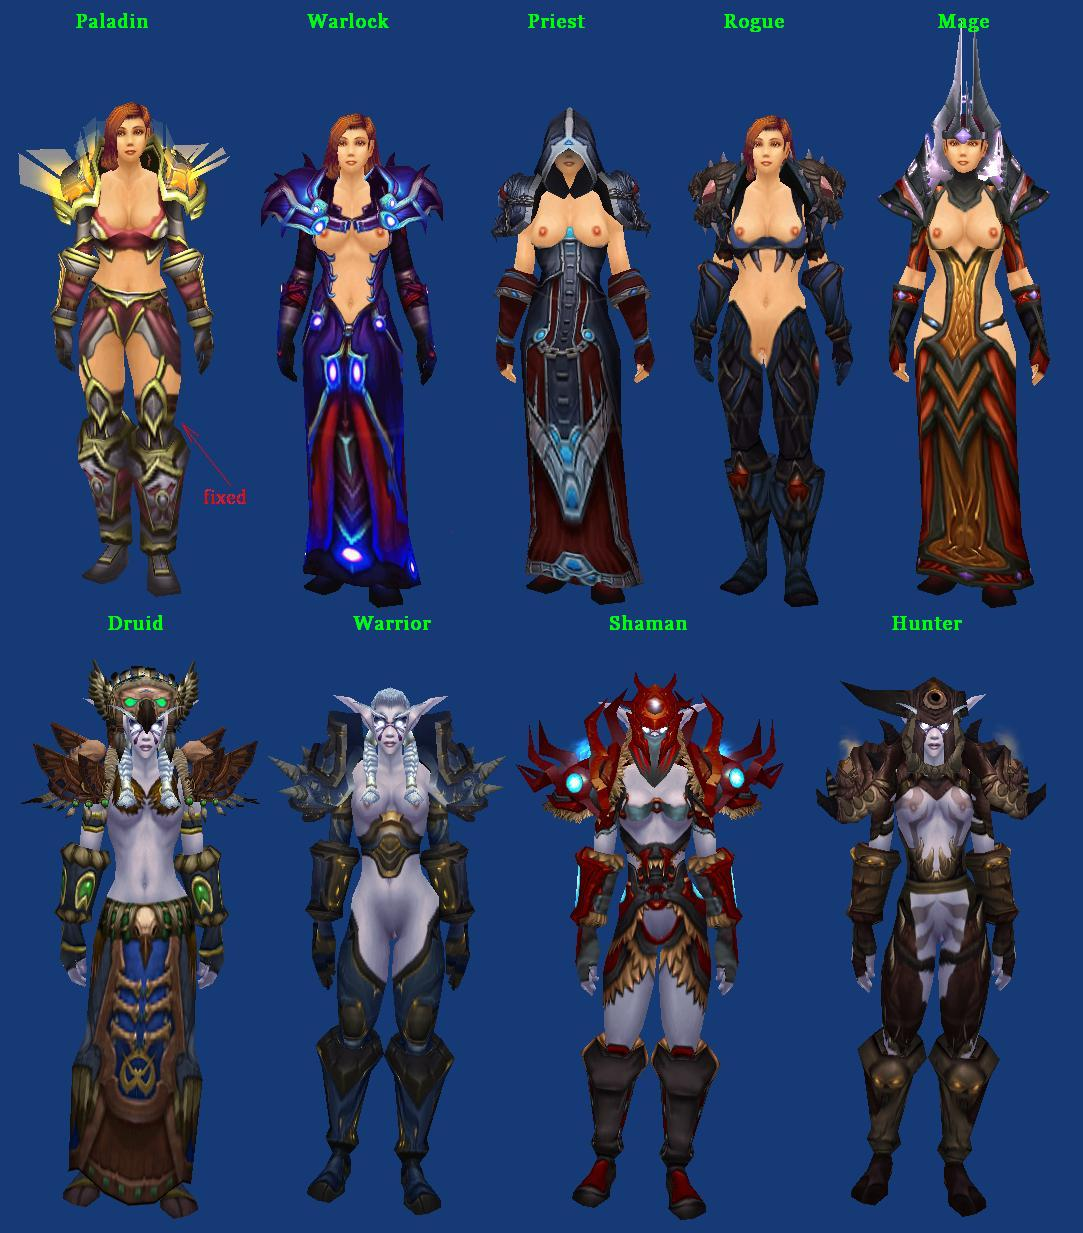 Nude patch world warcraft porno cuties